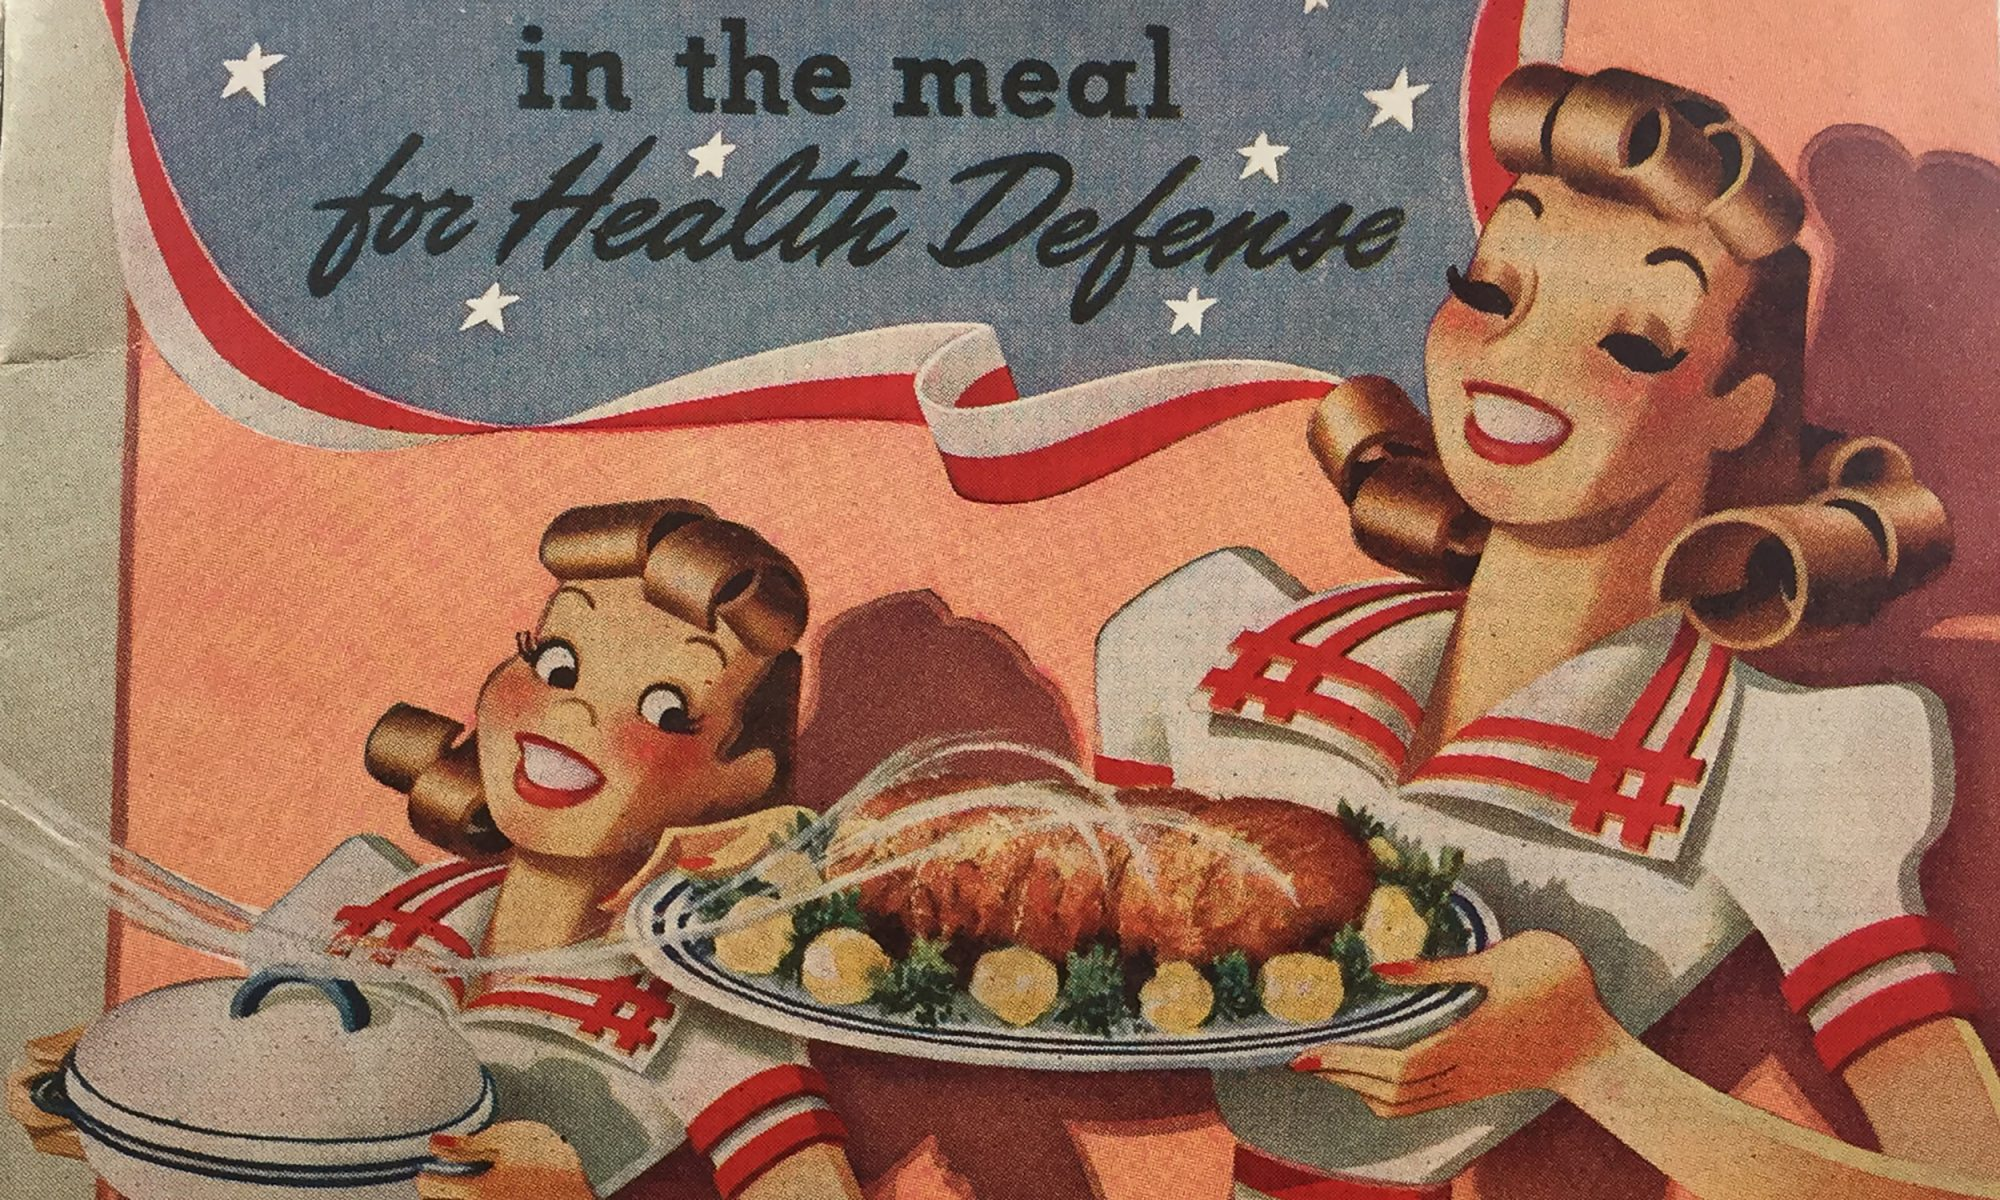 EC: Wartime Scrapple May Save Us All